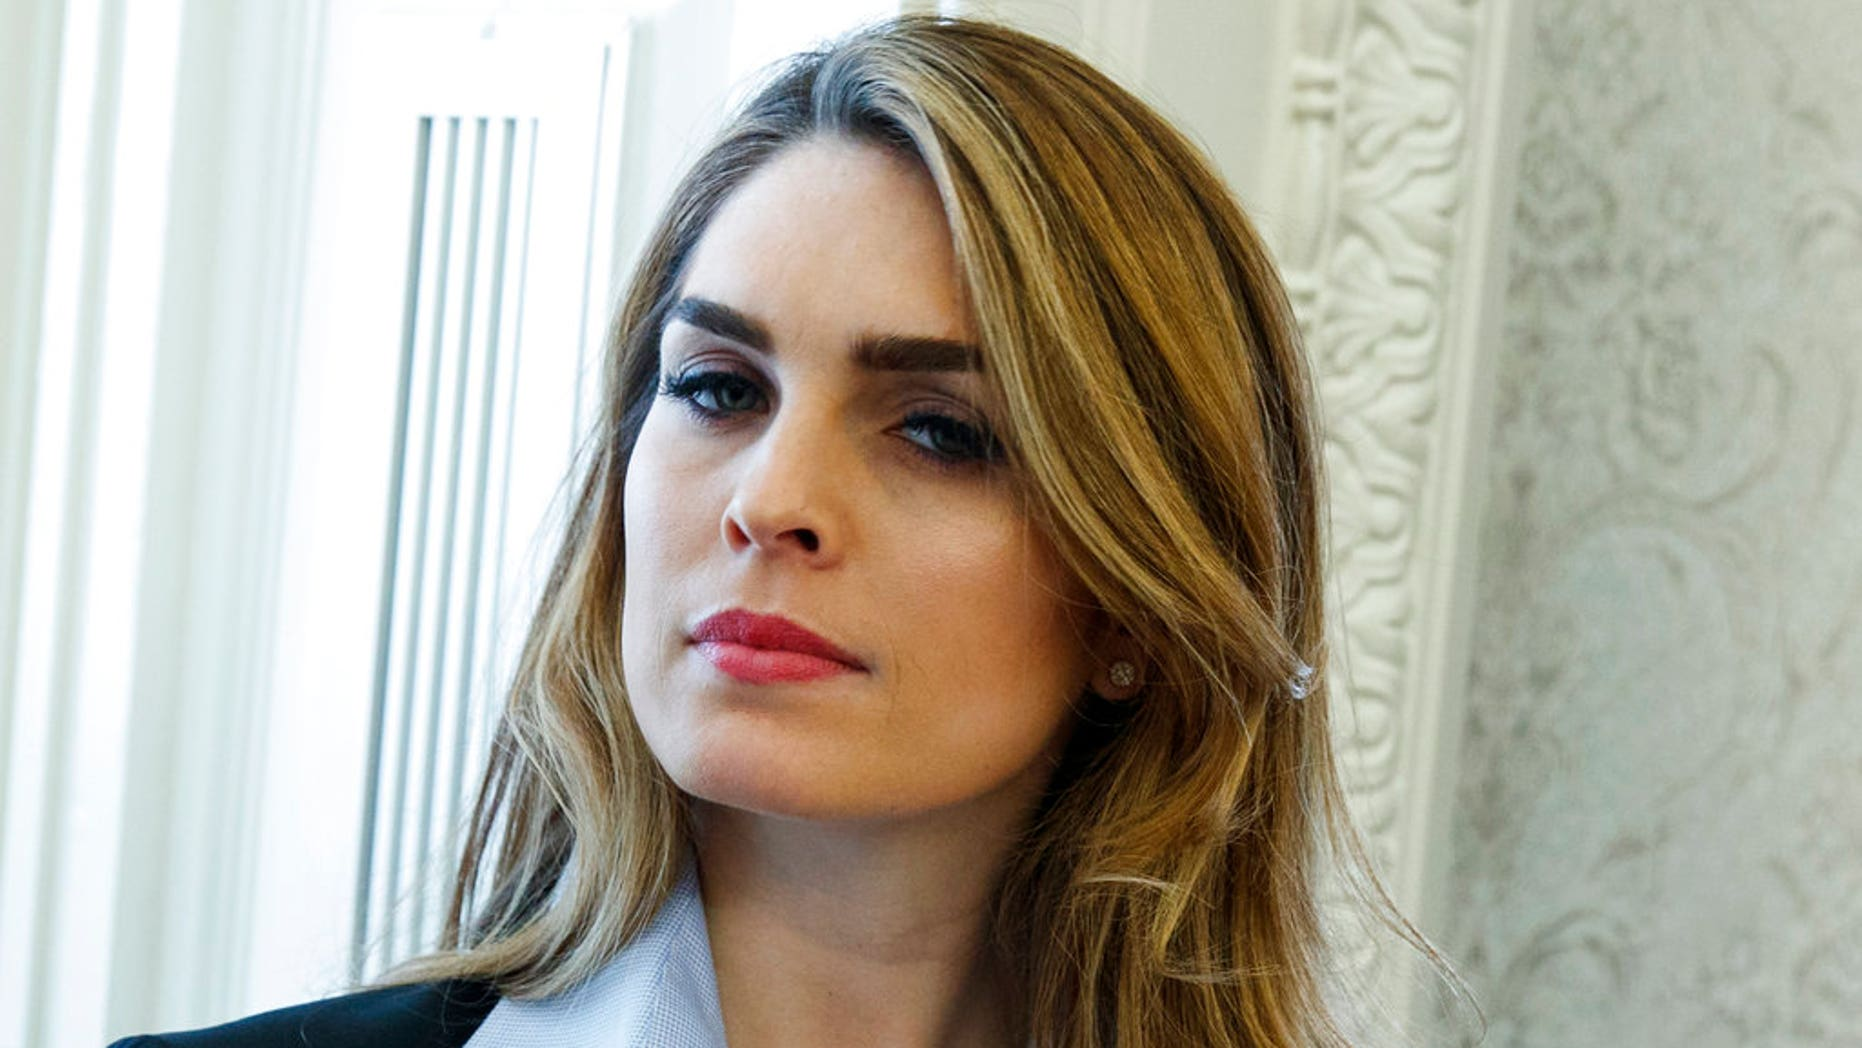 """In this Feb. 9, 2018 photo, White House Communications Director Hope Hicks is shown during a meeting in the Oval Office between President Donald Trump and Shane Bouvet, in Washington.  Hicks, one of President Donald Trump's most loyal aides, is resigning. In a statement, the president praises Hicks for her work over the last three years. He says he """"will miss having her by my side."""" The news comes a day after Hicks was interviewed for nine hours by the panel investigating Russia interference in the 2016 election and contact between Trump's campaign and Russia.  (AP Photo/Evan Vucci)"""